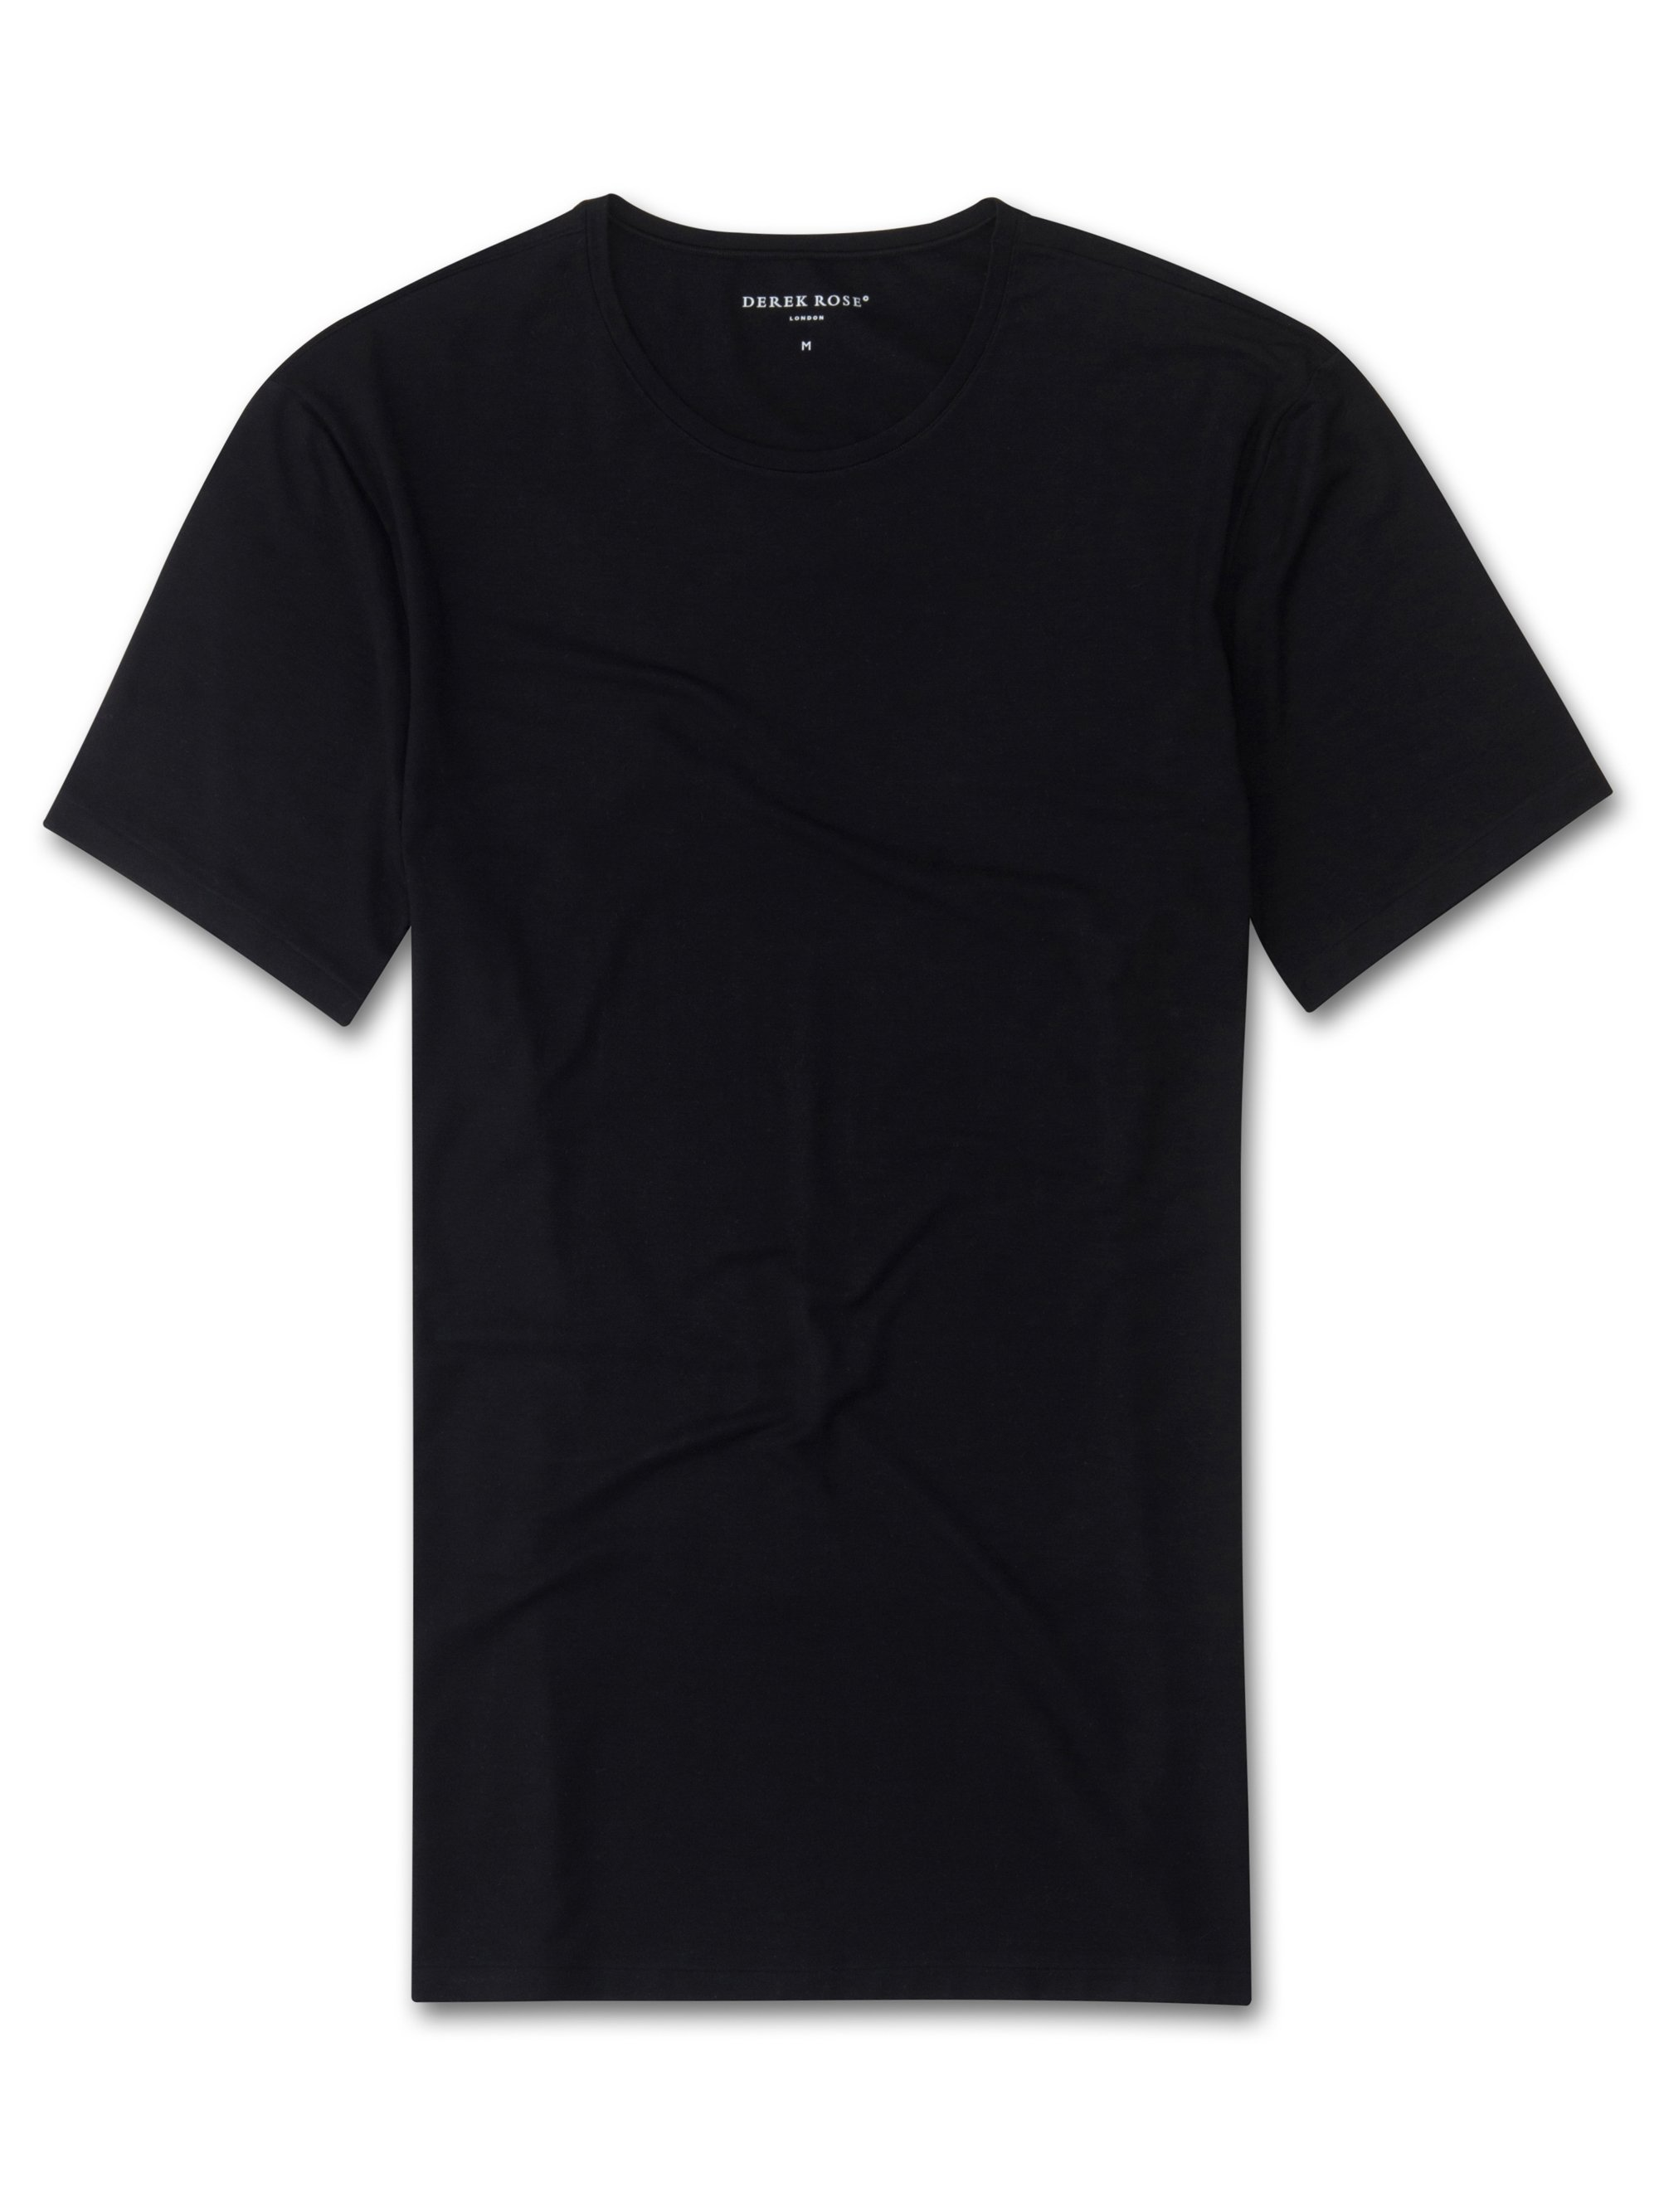 Men's Underwear Crew-Neck T-Shirt Alex Micro Modal Stretch Black